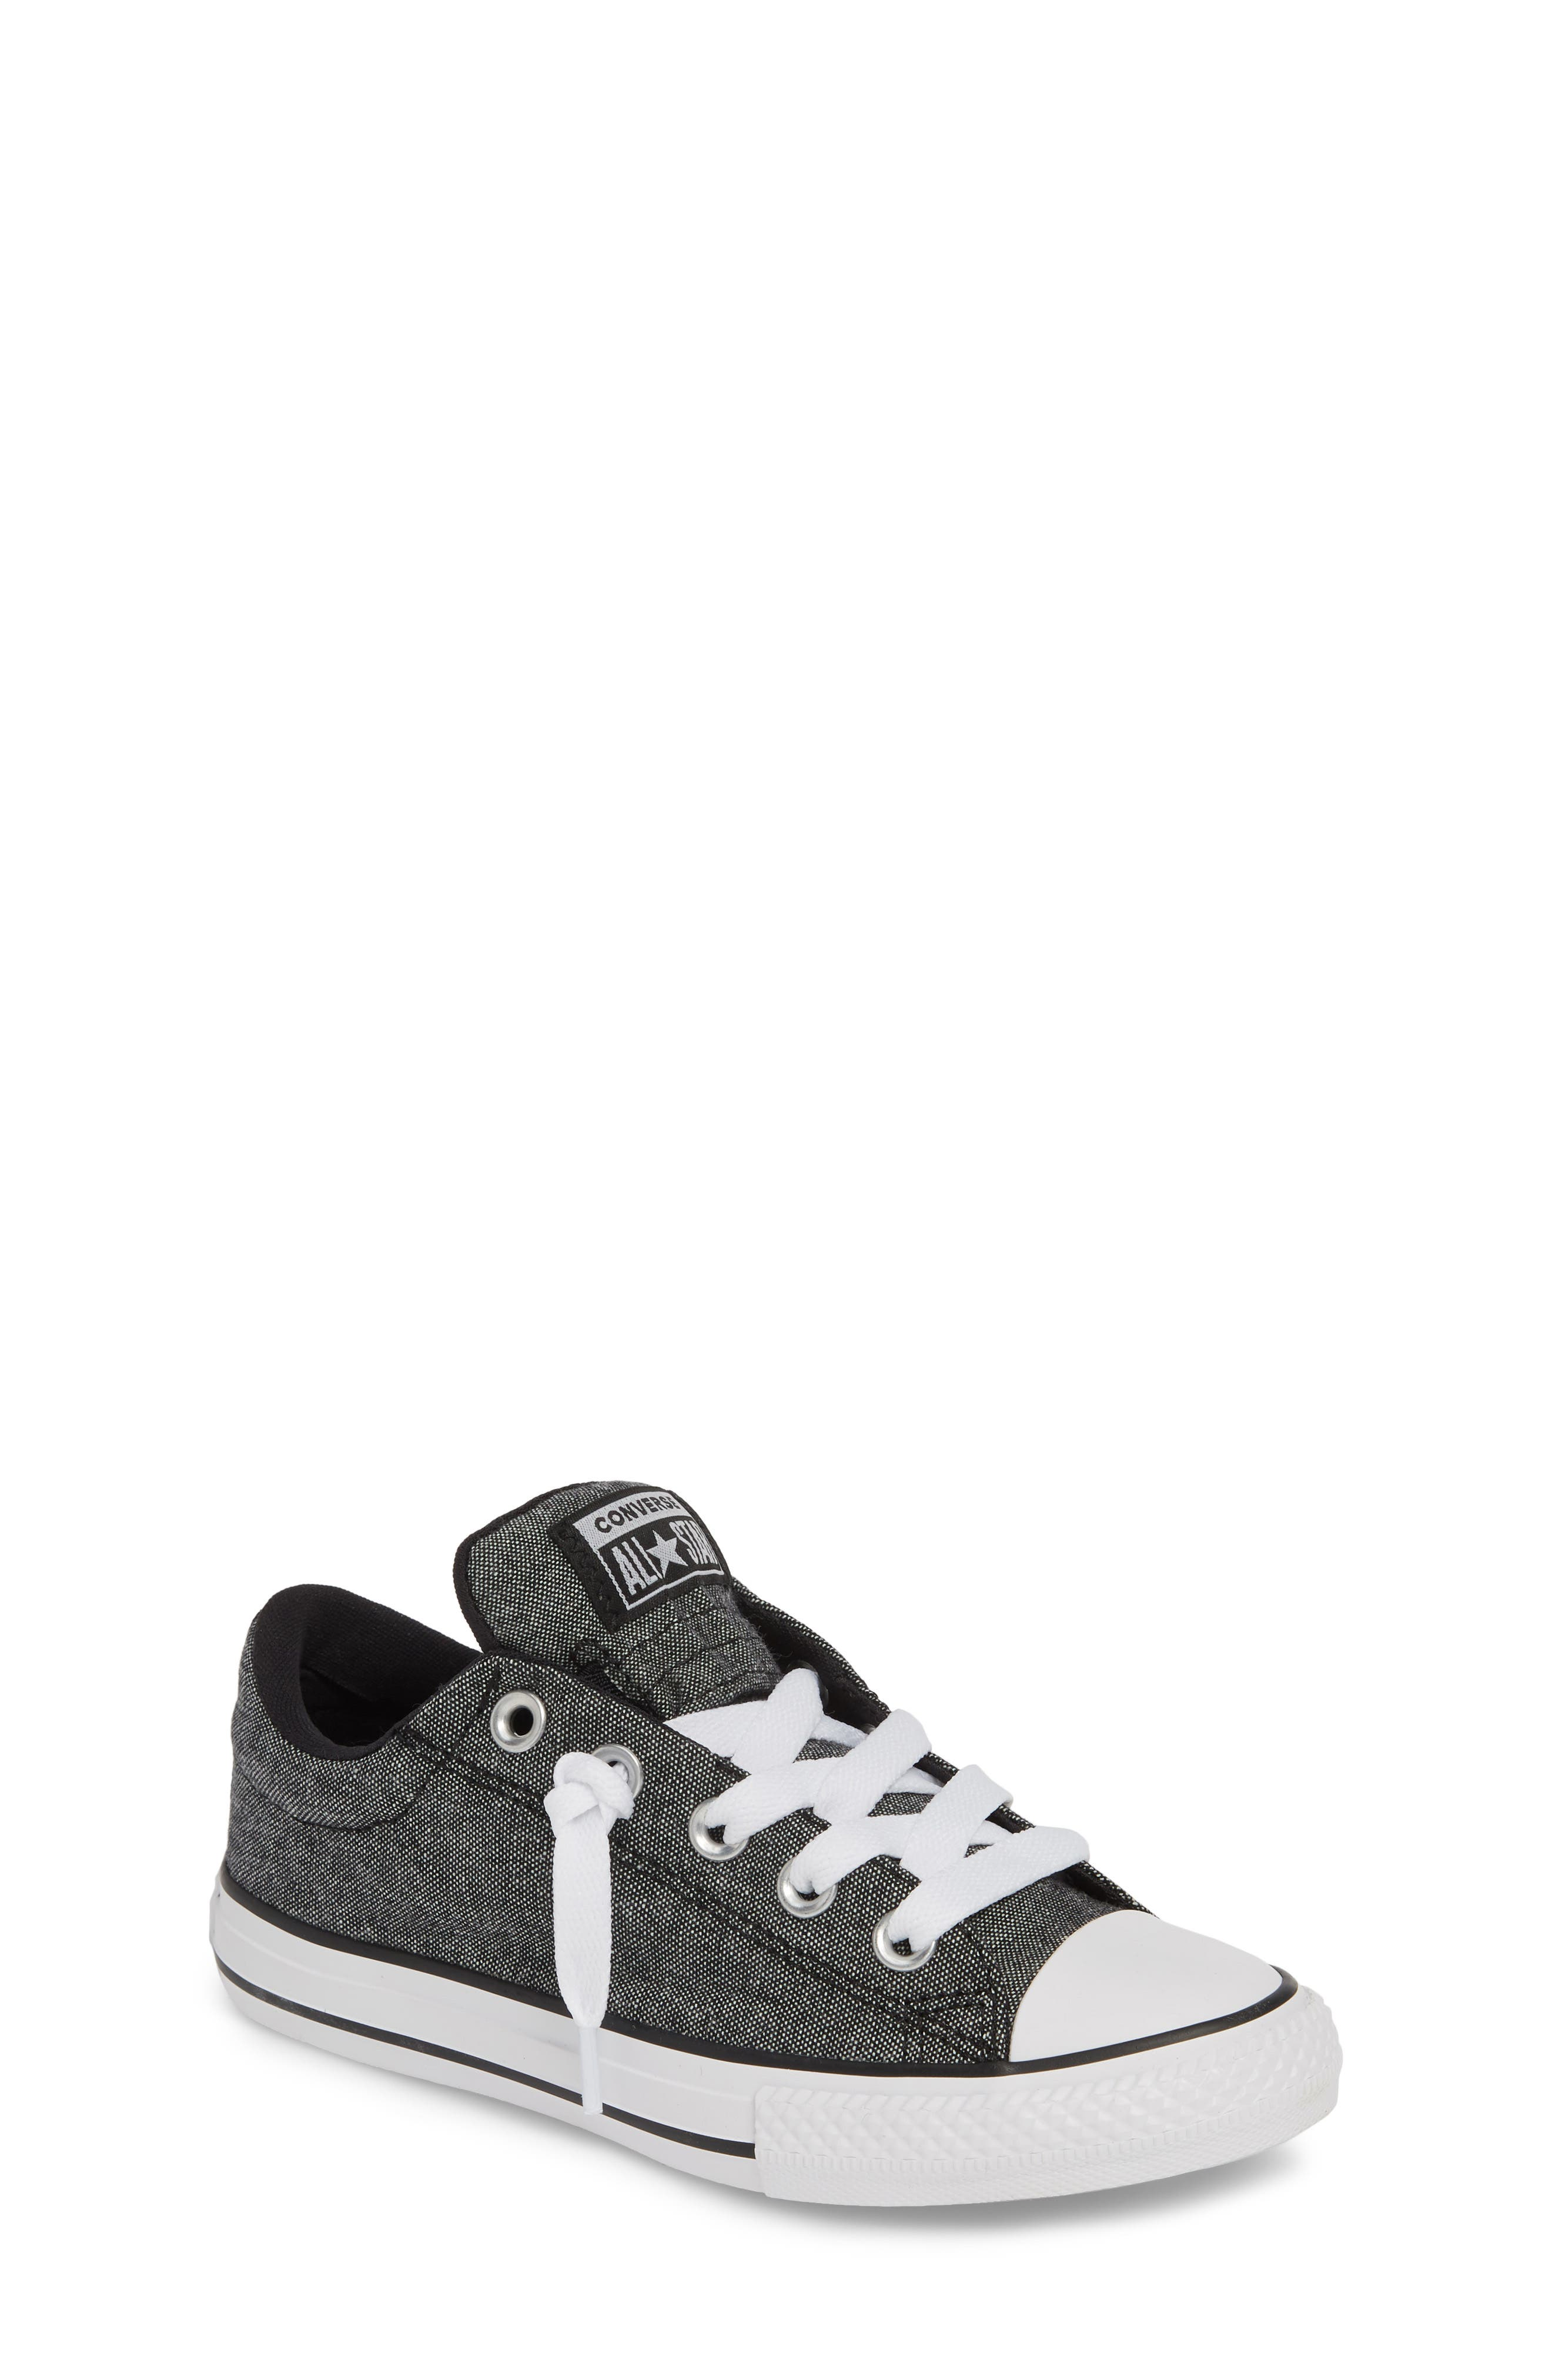 CONVERSE, Chuck Taylor<sup>®</sup> All Star<sup>®</sup> Street Sneaker, Main thumbnail 1, color, BLACK/ BLACK/ WHITE